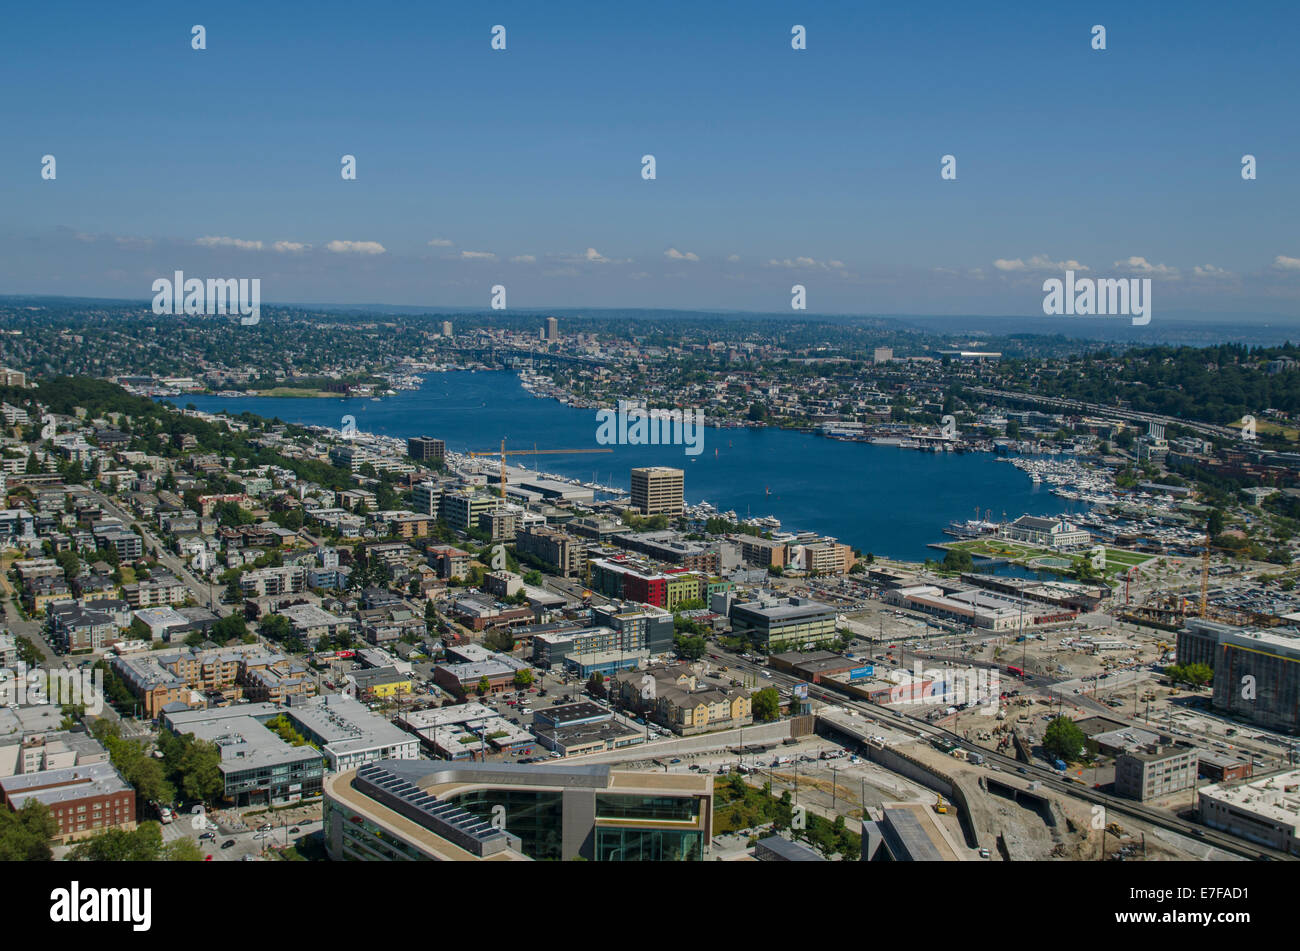 View of Lake Union from Space needle, Seattle - Stock Image